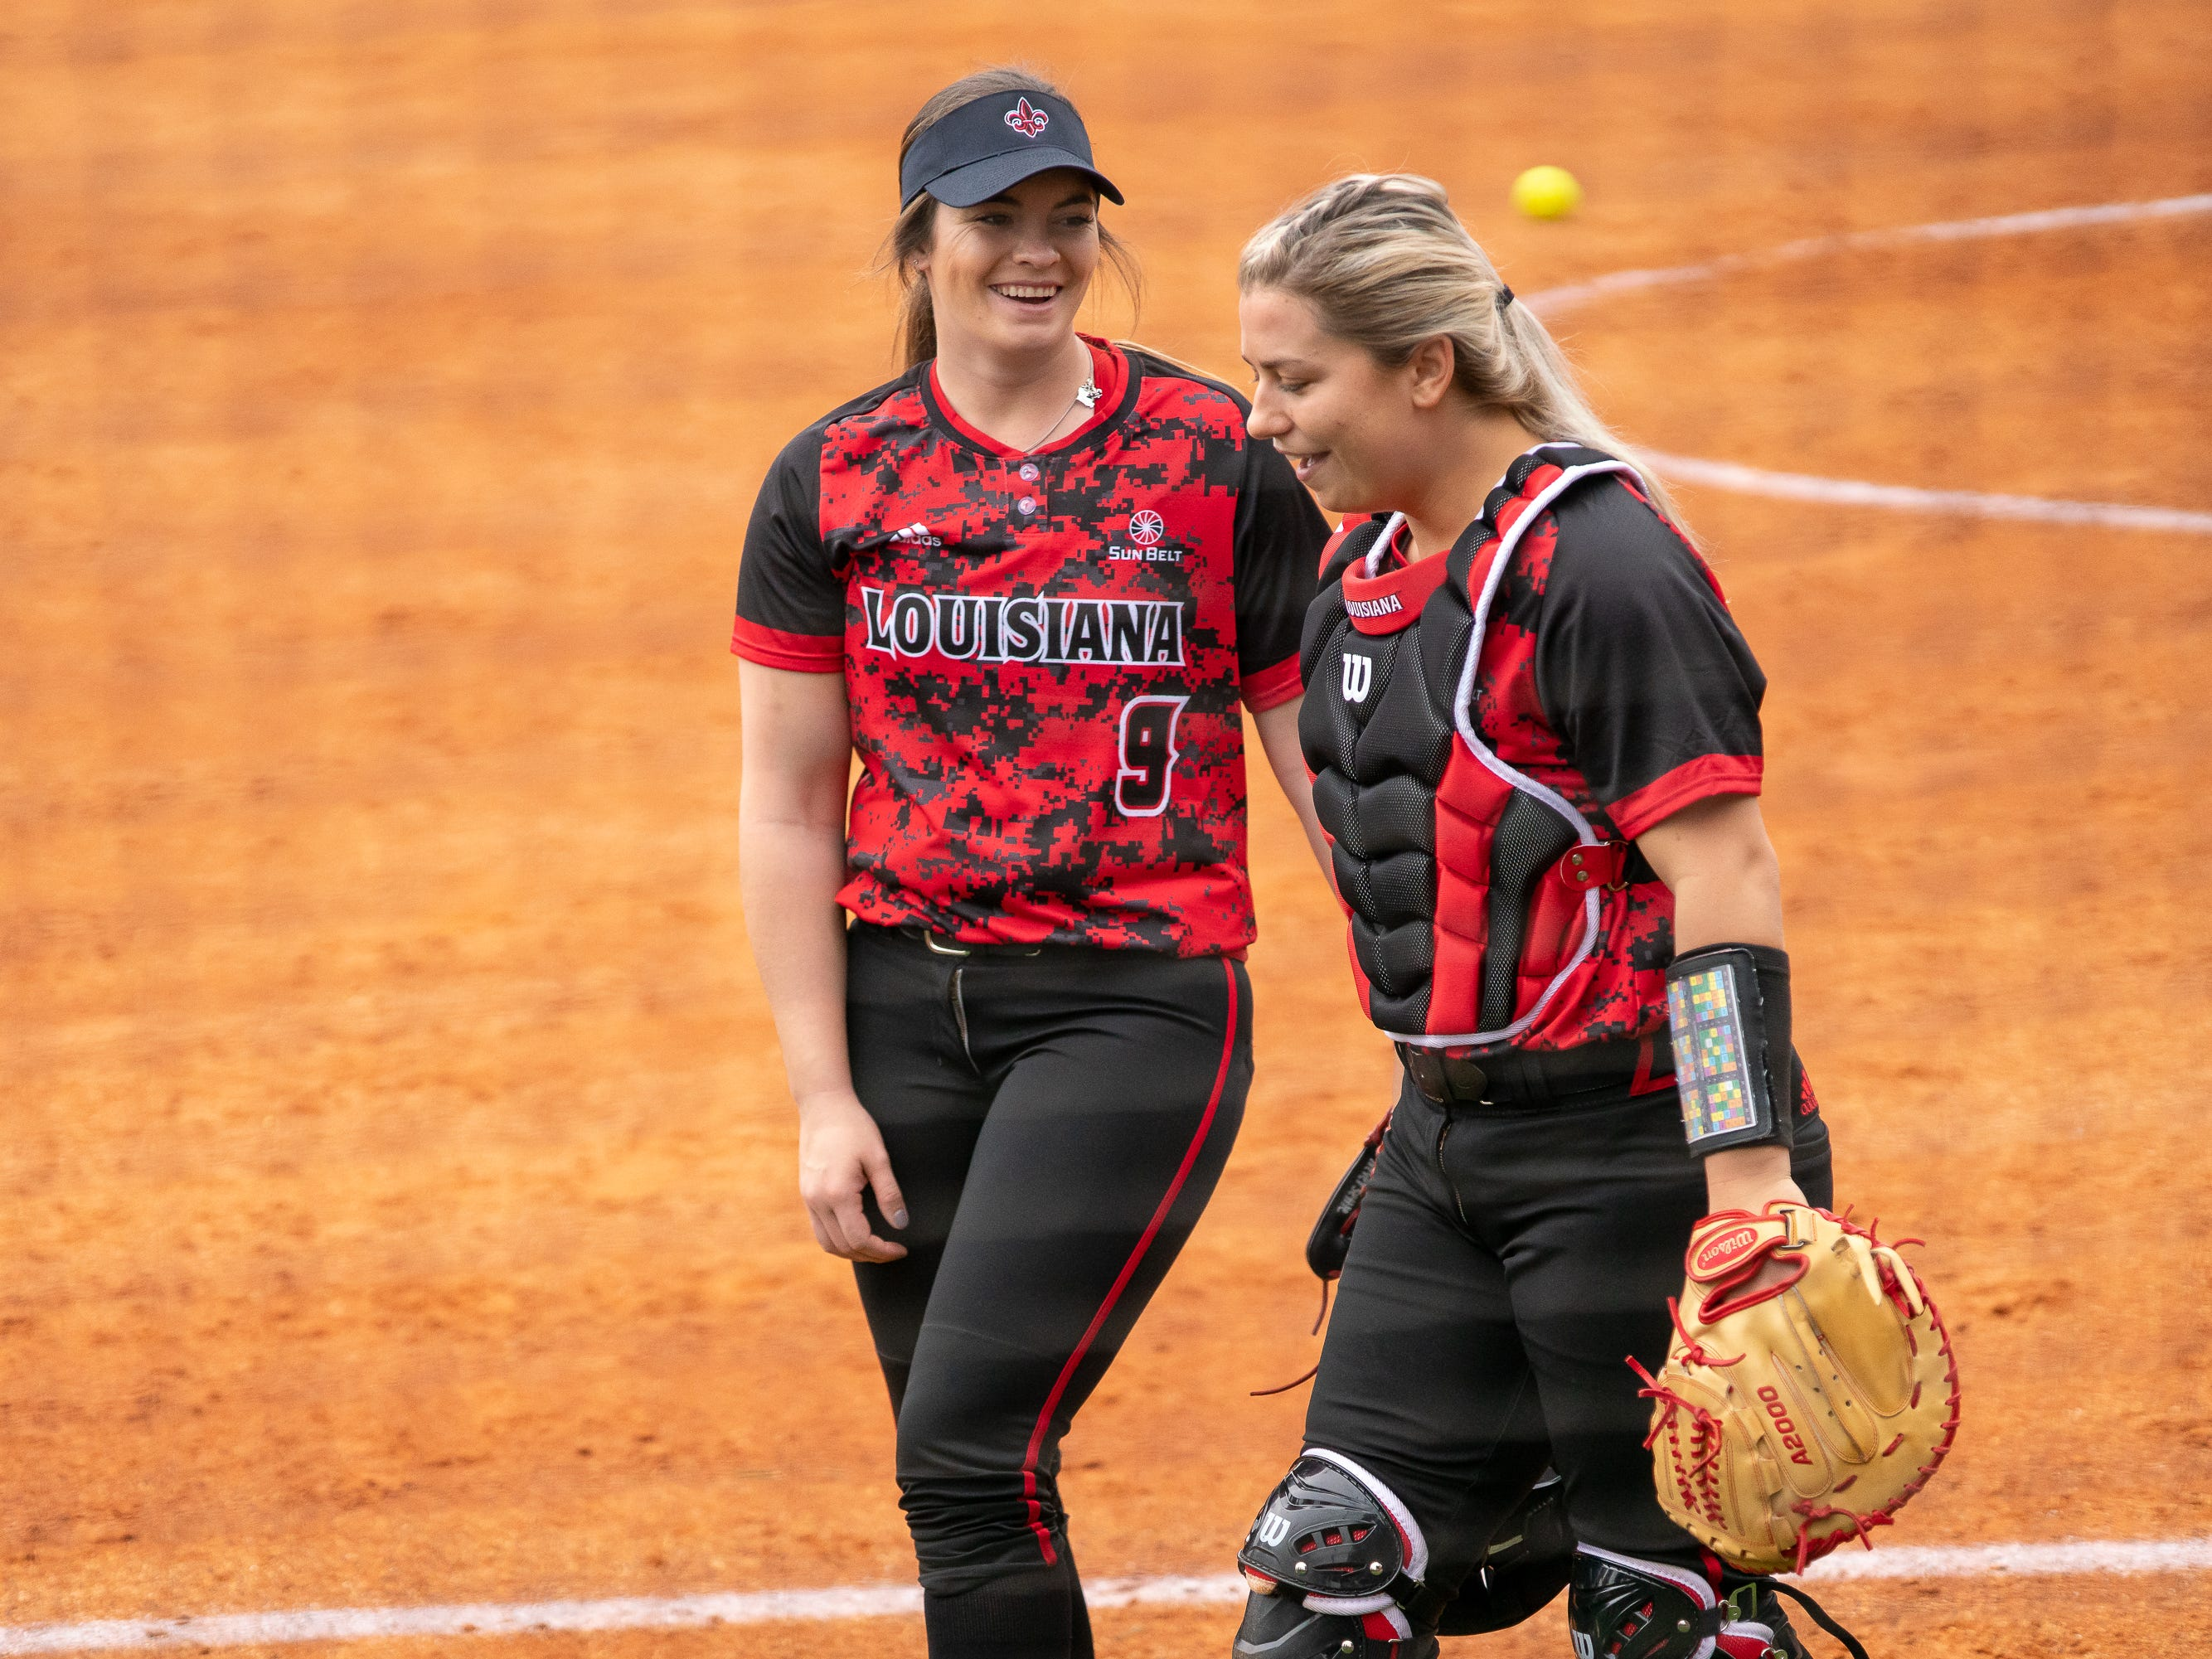 UL's Summer Ellyson (left) and Lexie Comeaux (right) laughing after the inning as the Ragin' Cajuns take on Stephen F. Austin at Lamson Park on Saturday, Feb. 16, 2019.